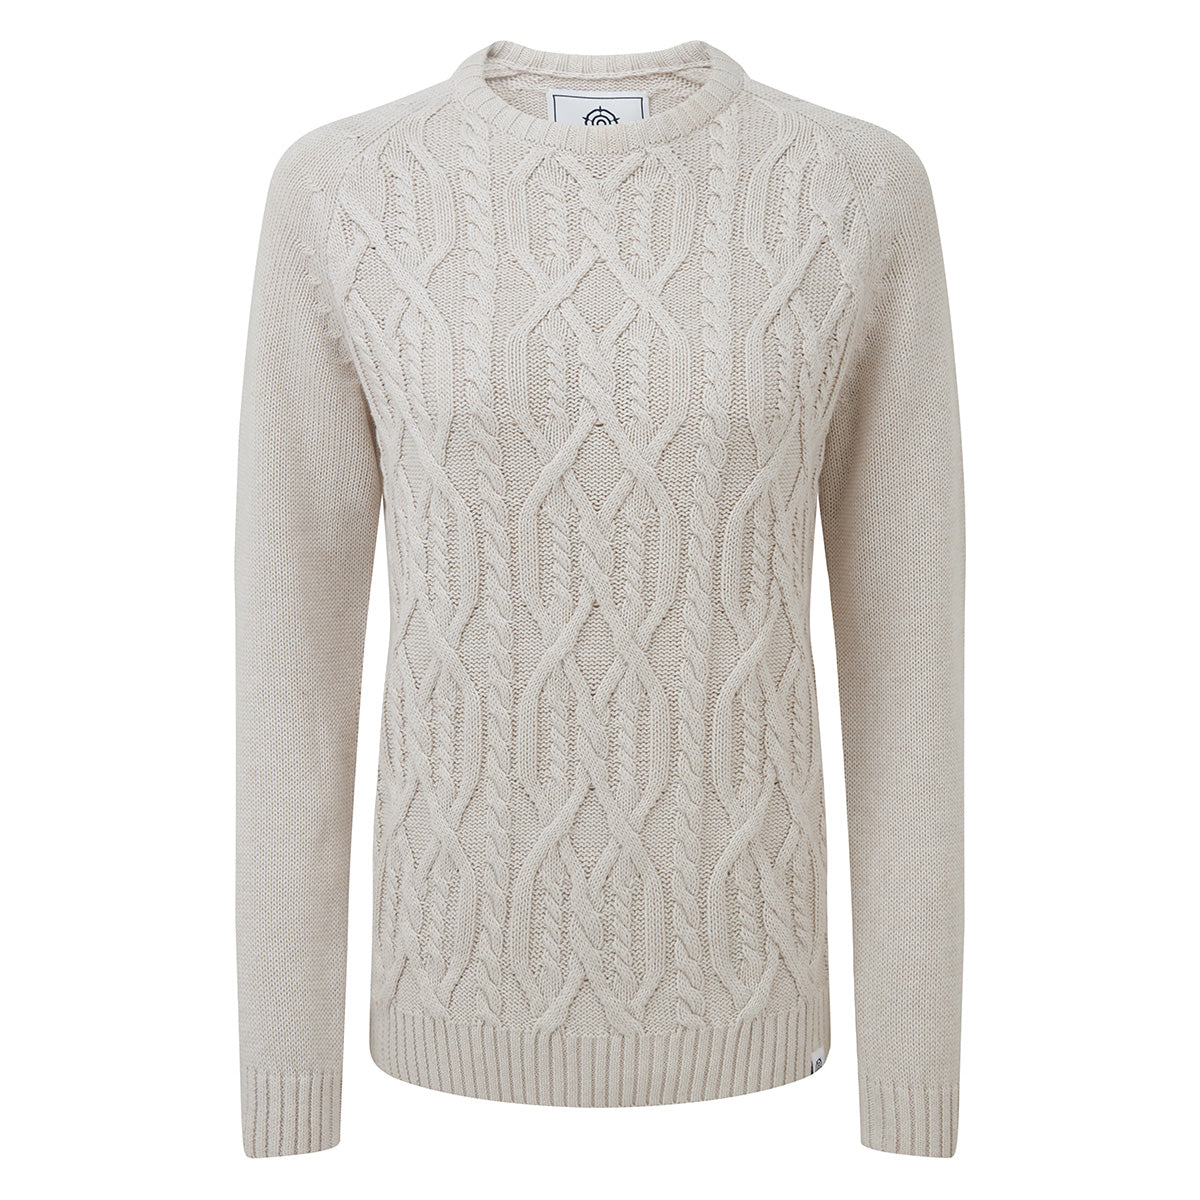 Polly Womens Cable Knit Jumper - Oatmeal Marl image 4